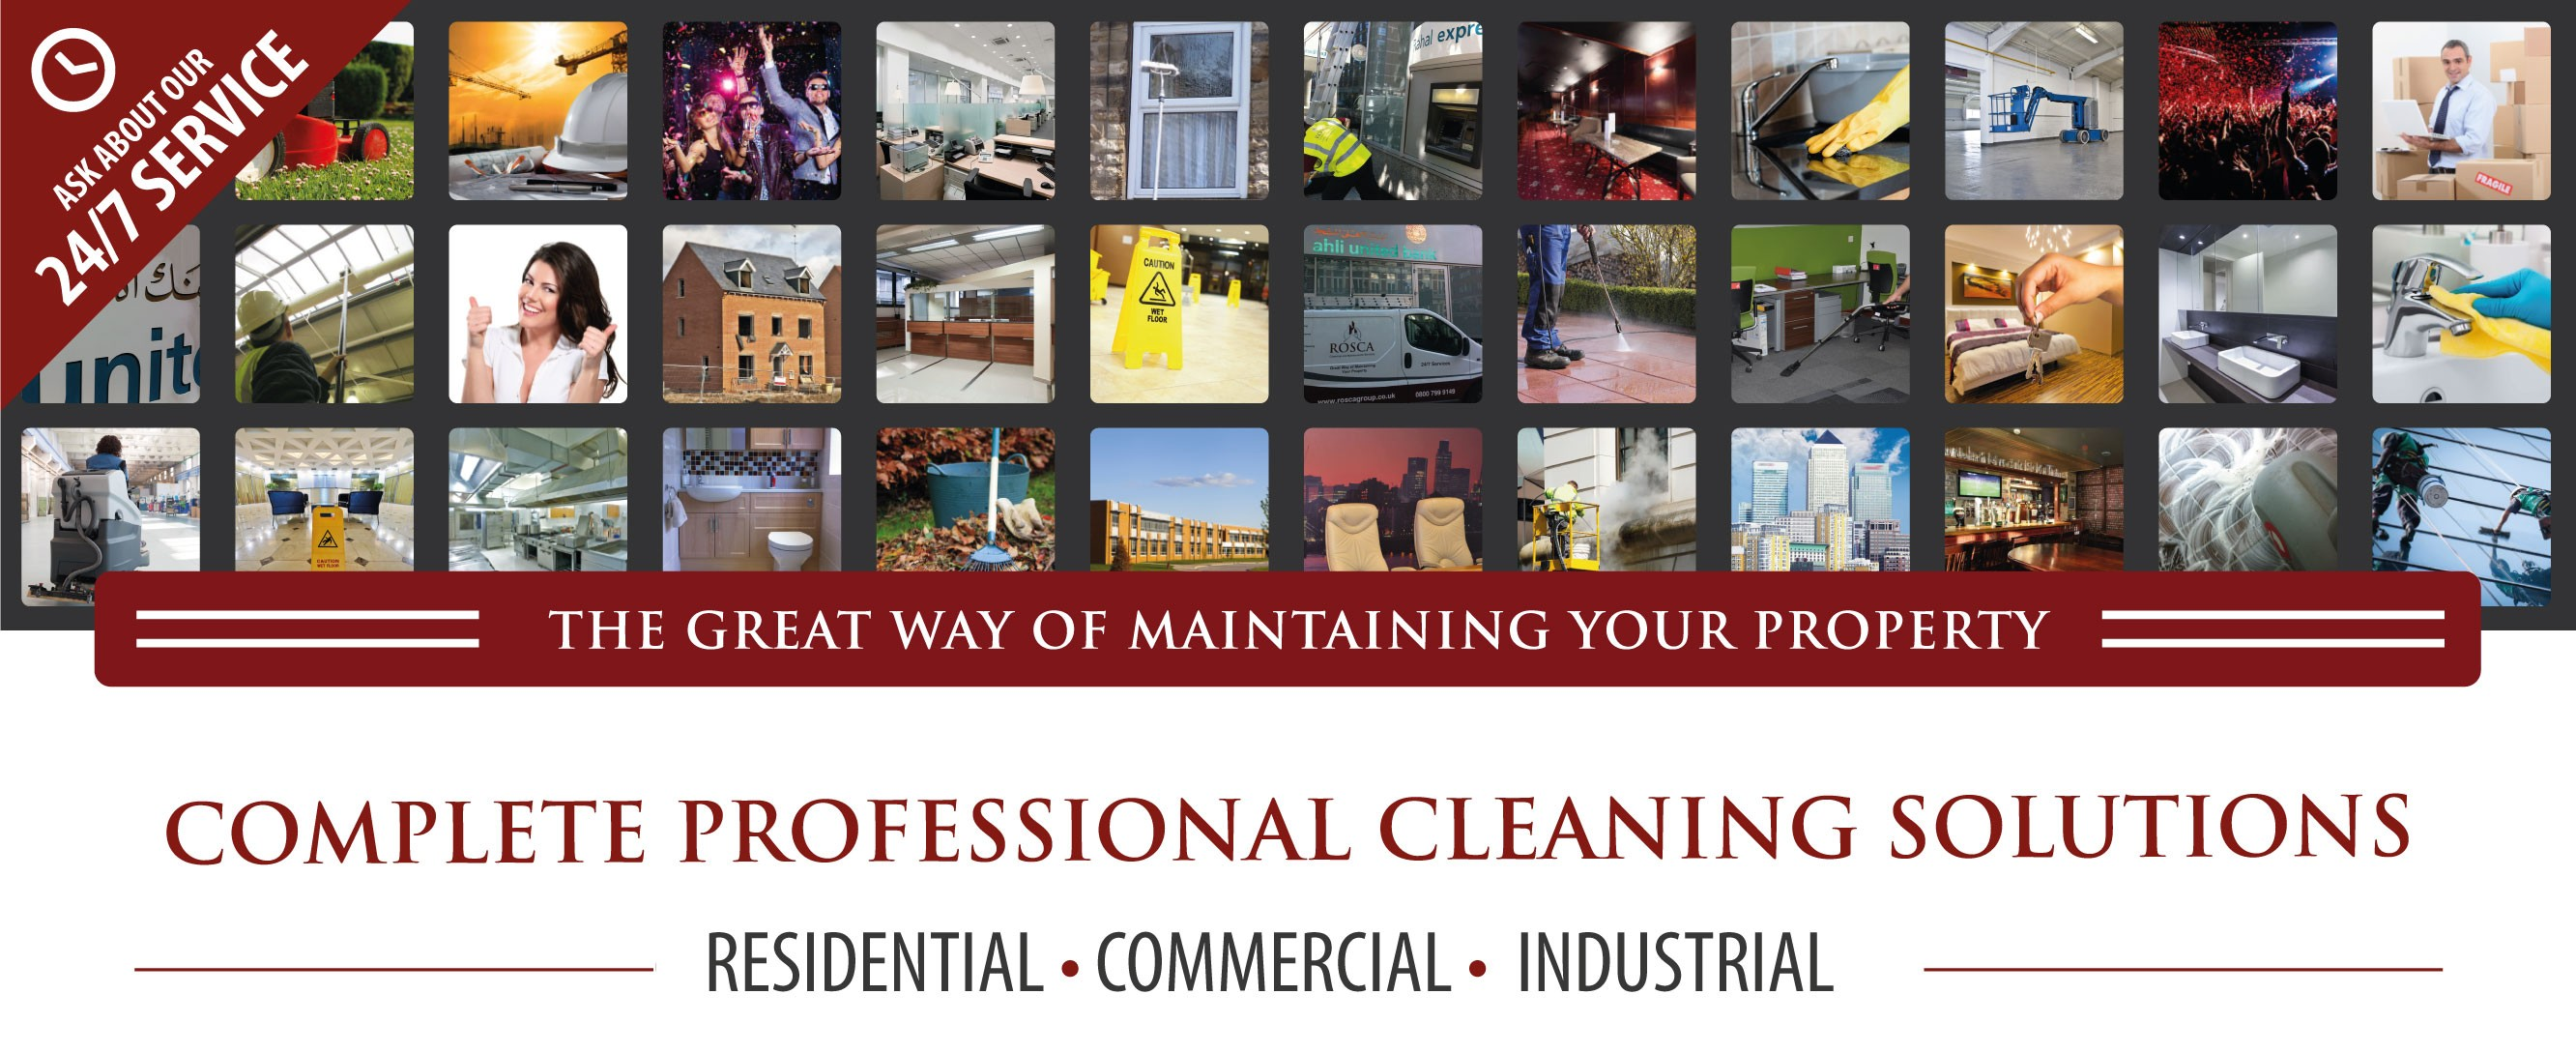 Cleaning Services Leighton Buzzard, Bedfordshire